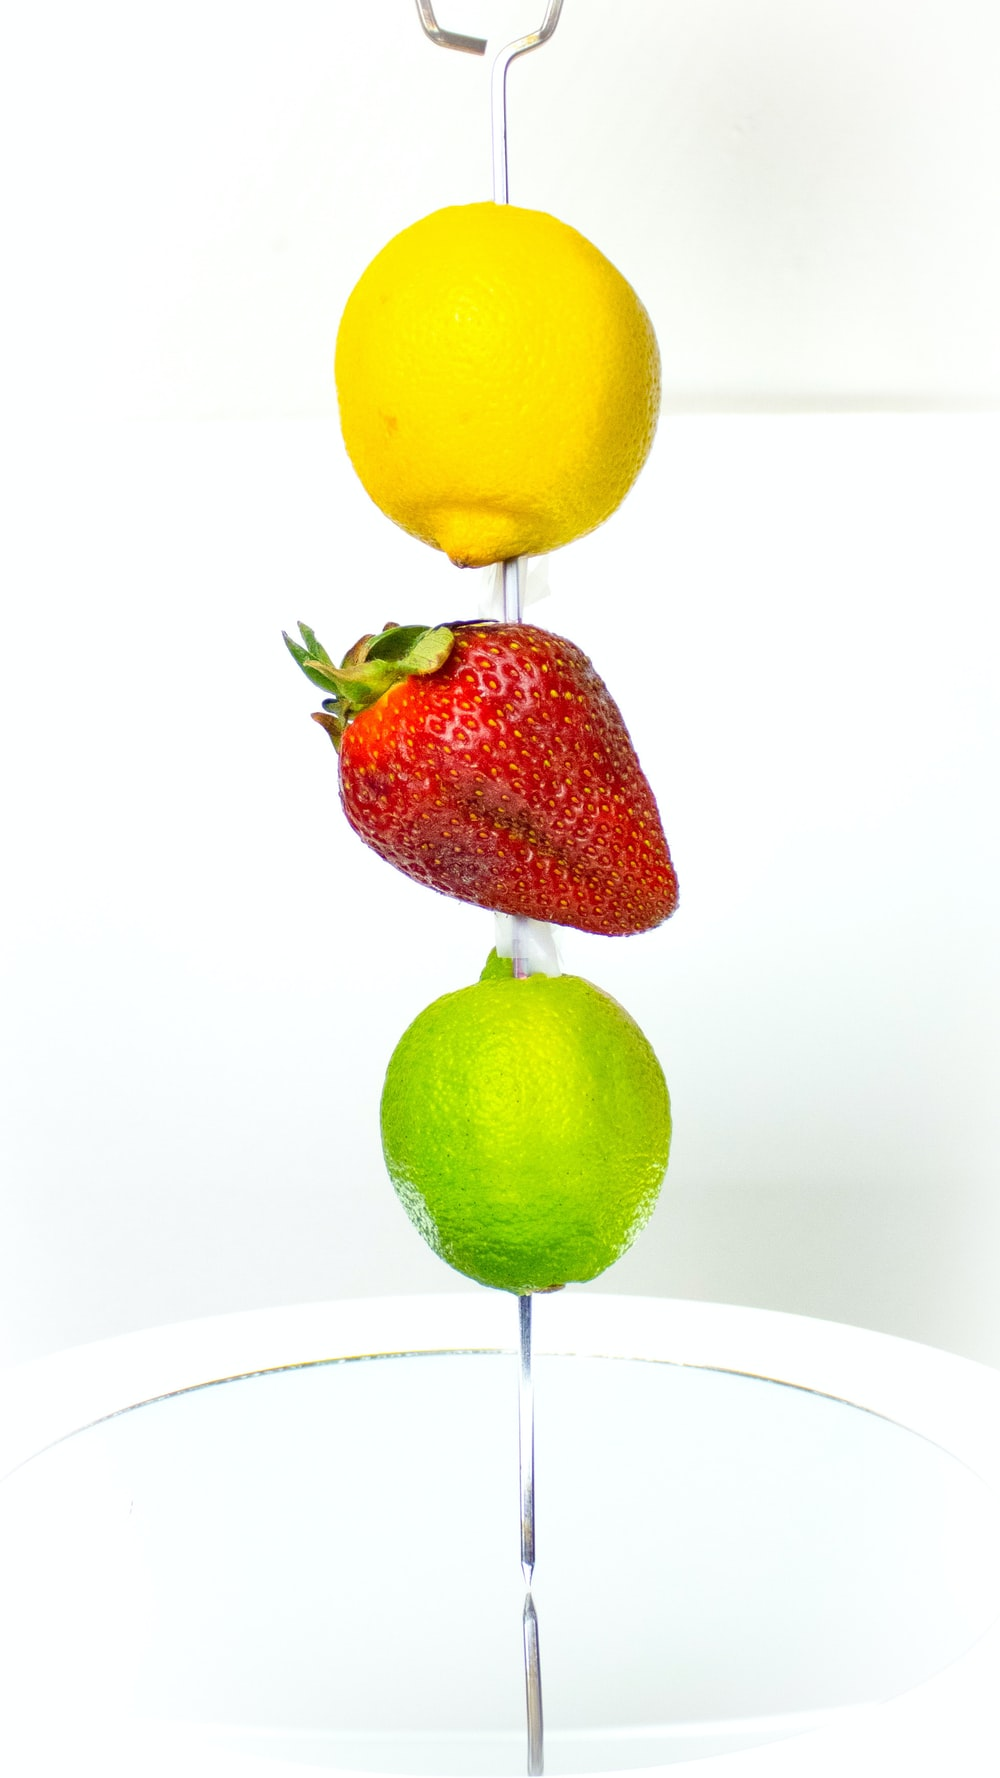 red strawberry and yellow lemon fruit